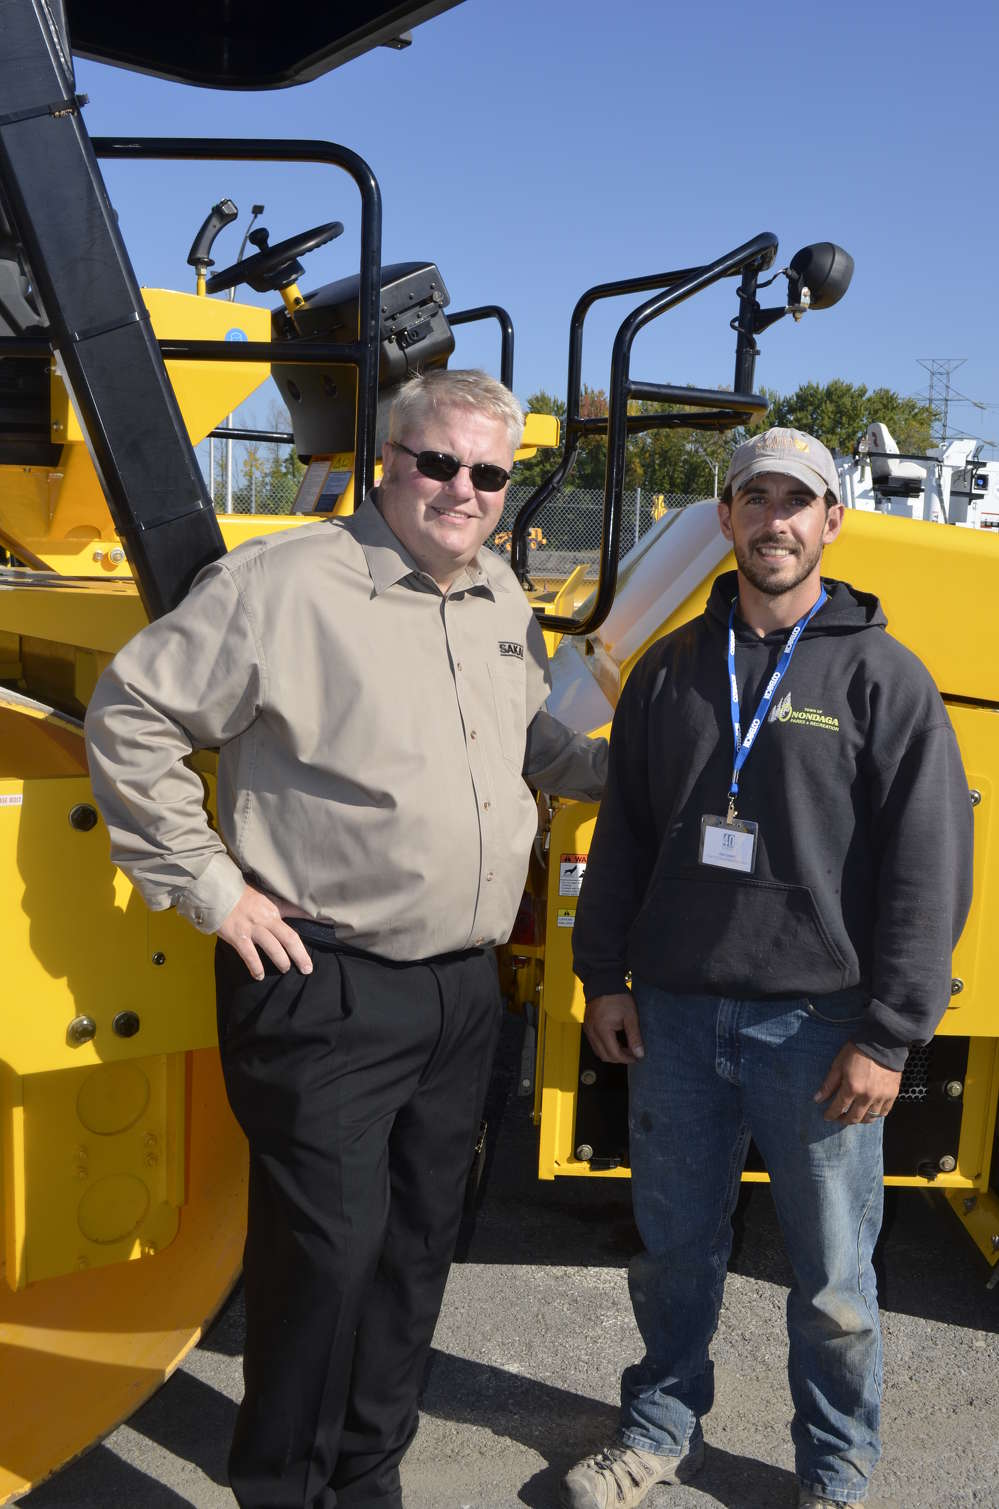 Mark Armel (L) of Sakai discusses compaction and density with Alex Dewitt of the town of Onondaga.